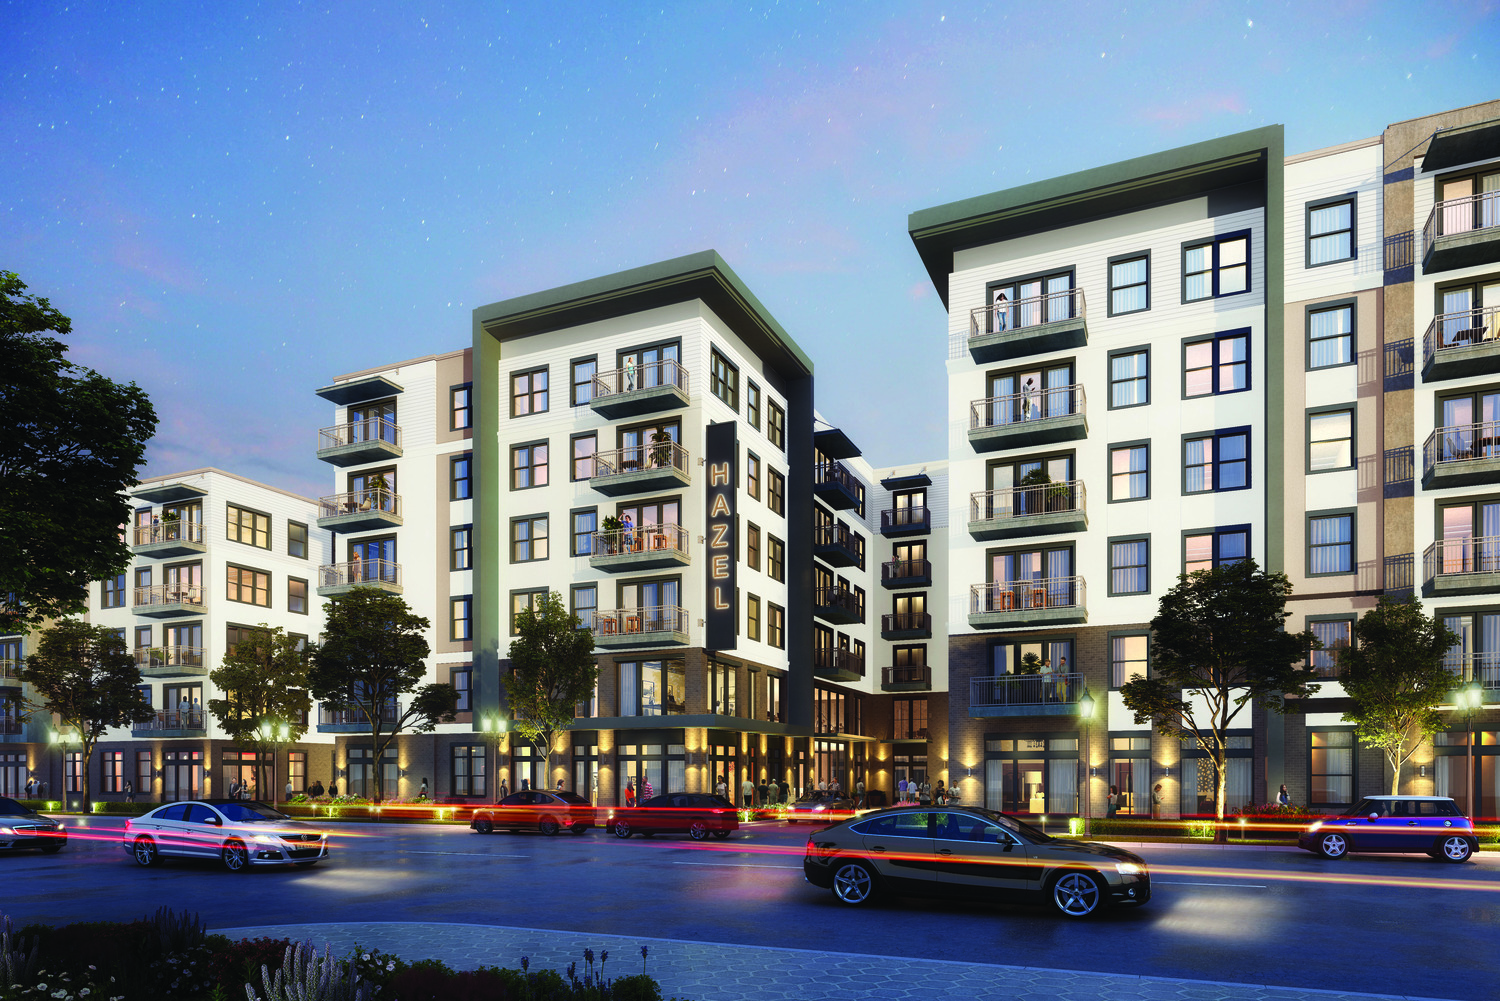 CBG builds Hazel Dallas Apartments, a 398-Unit, Six-Story Luxury Apartment with Precast Parking and Wellness Center in Dallas, TX